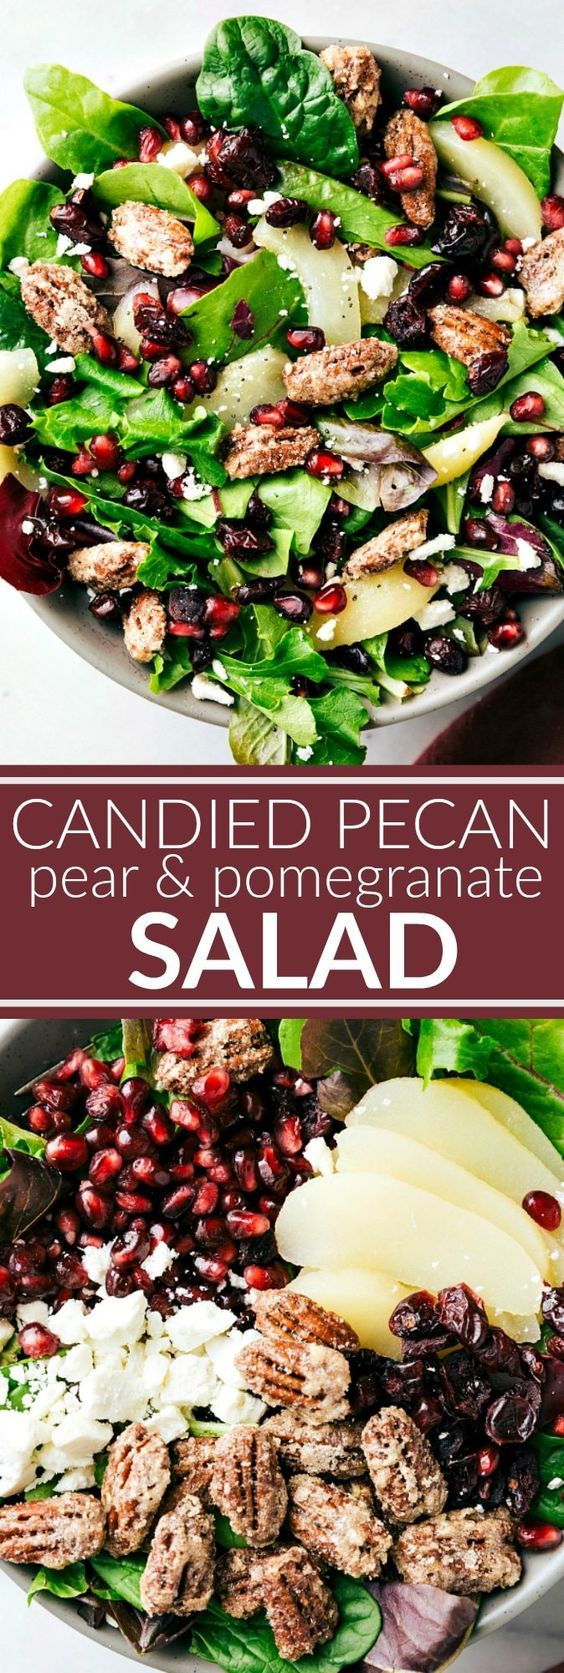 BEST HOLIDAY SALAD! An easy to make and delicious side salad -- candied pecans, pears, pomegranates, dried cranberries, and feta cheese with a simple incredible raspberry poppyseed dressing. via chelseasmessyapron.com